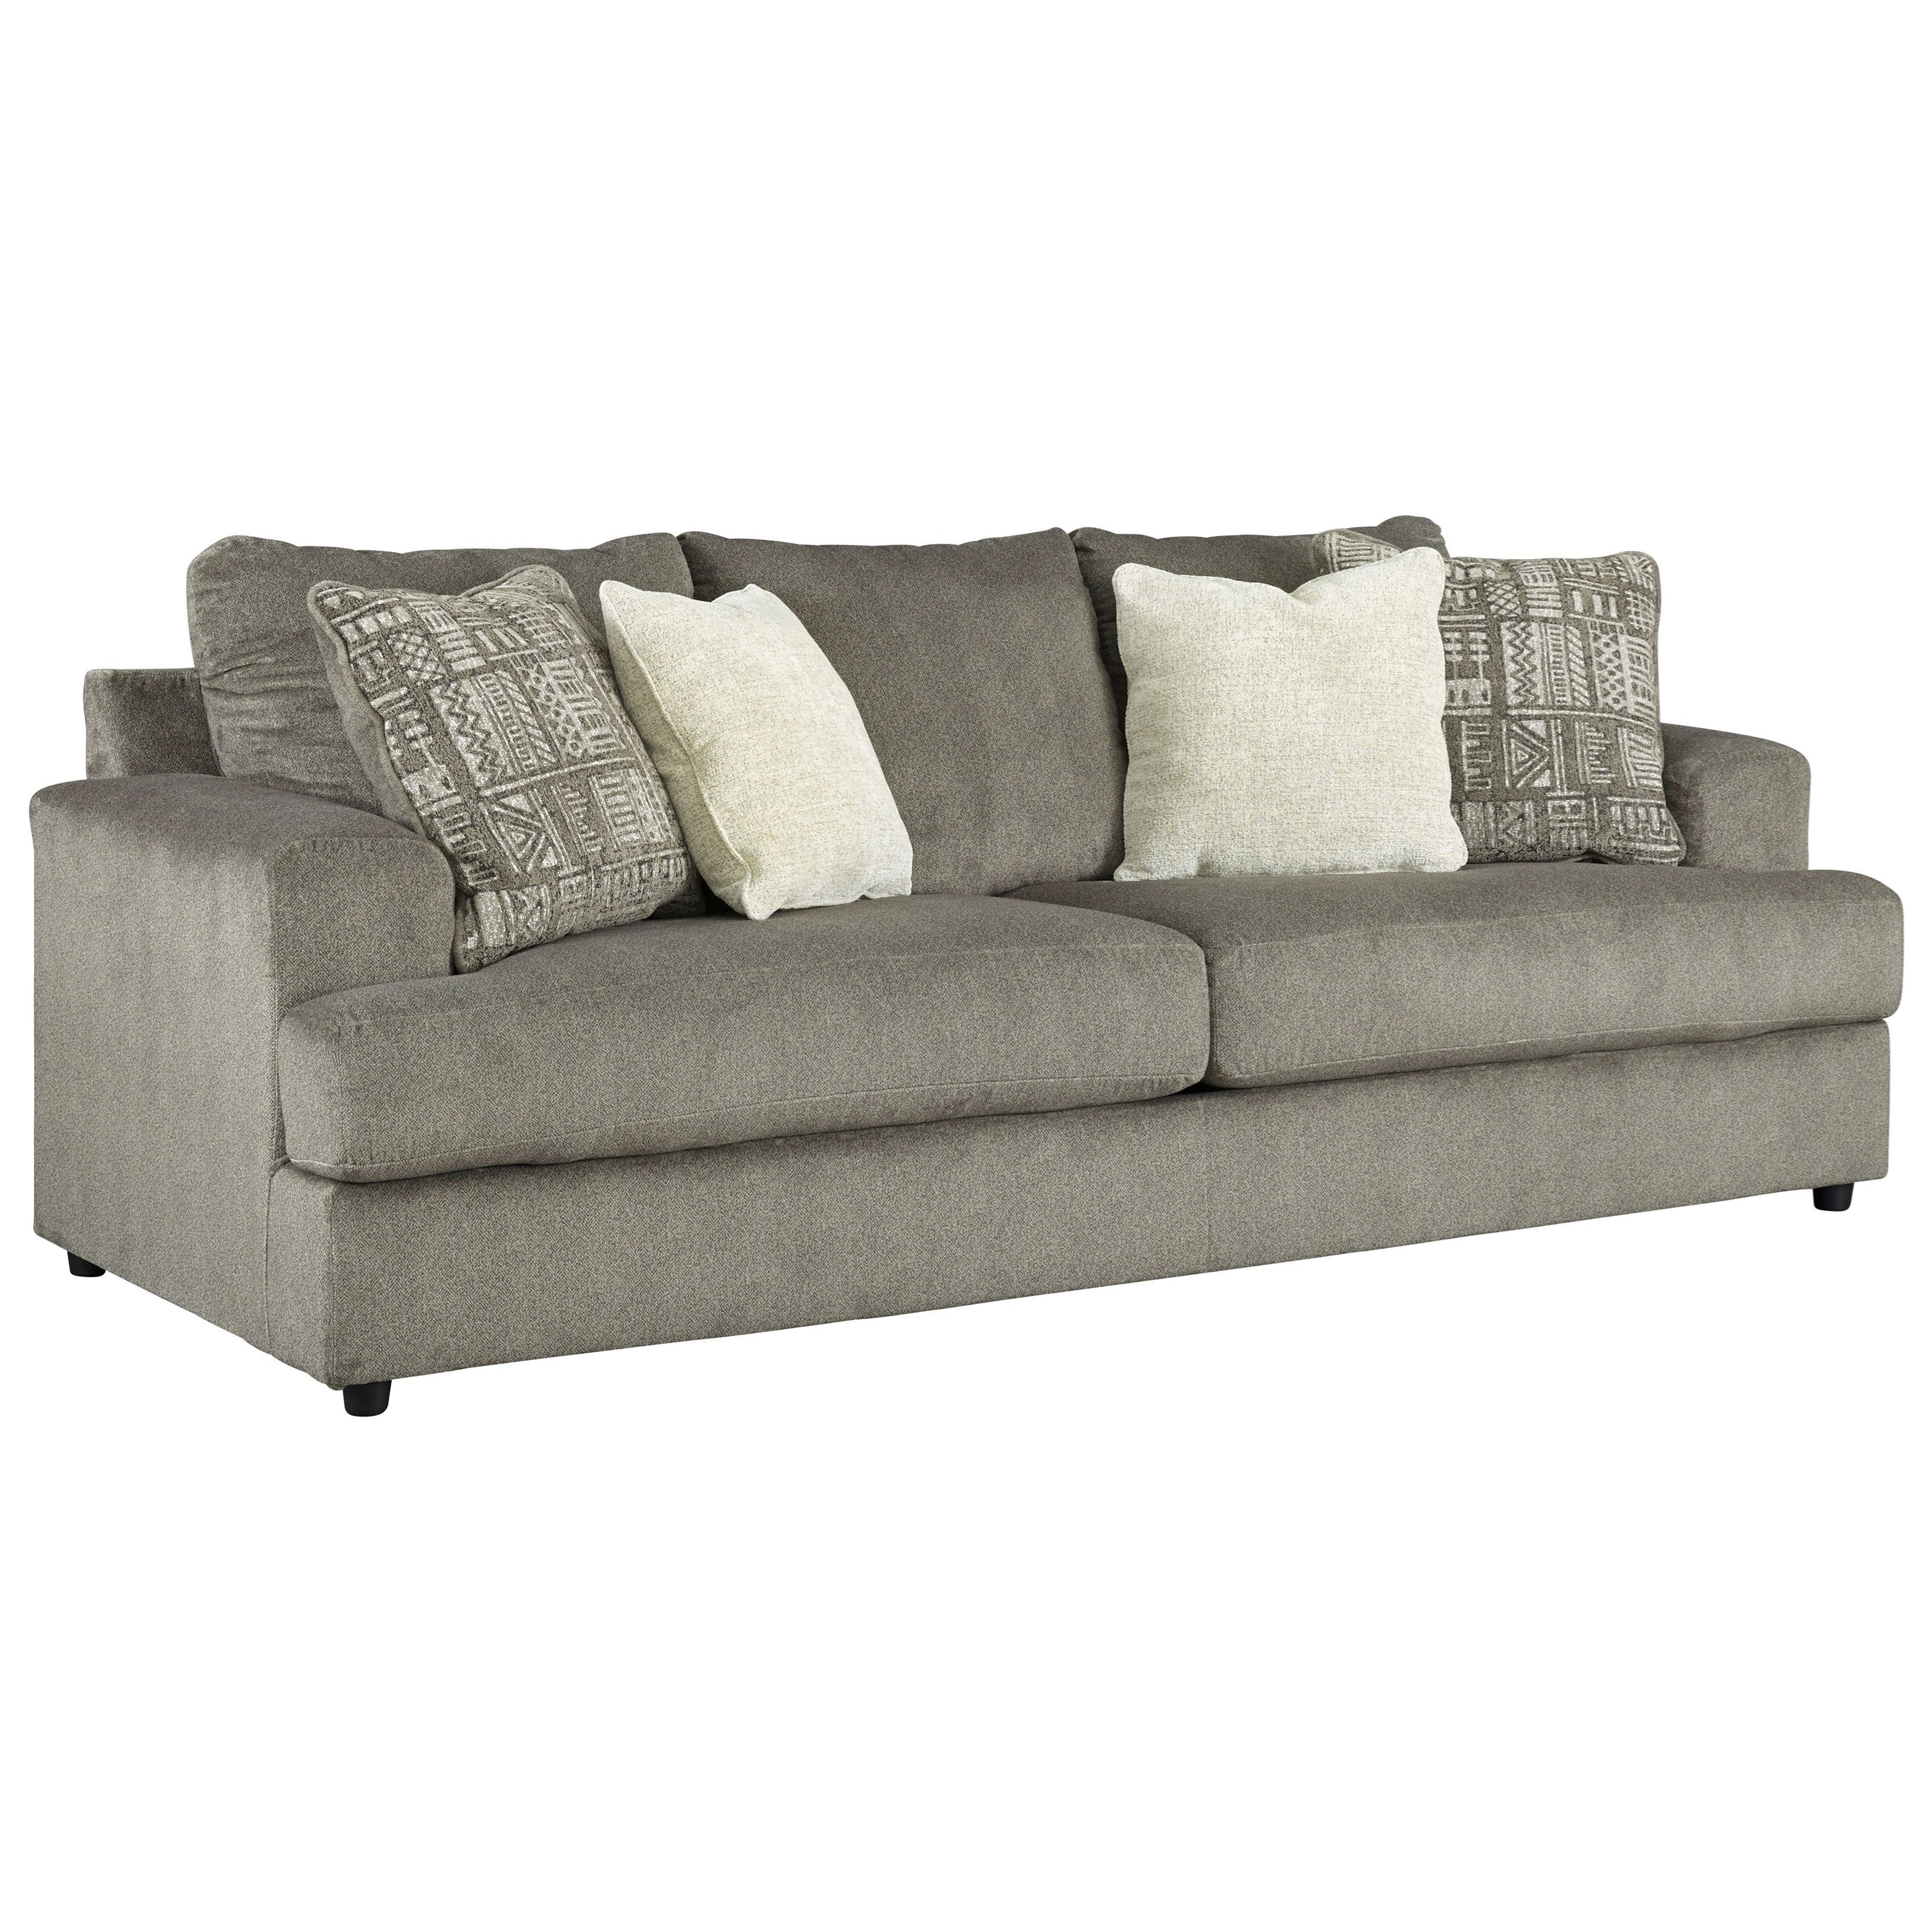 Soletren Queen Sofa Sleeper at Sadler's Home Furnishings